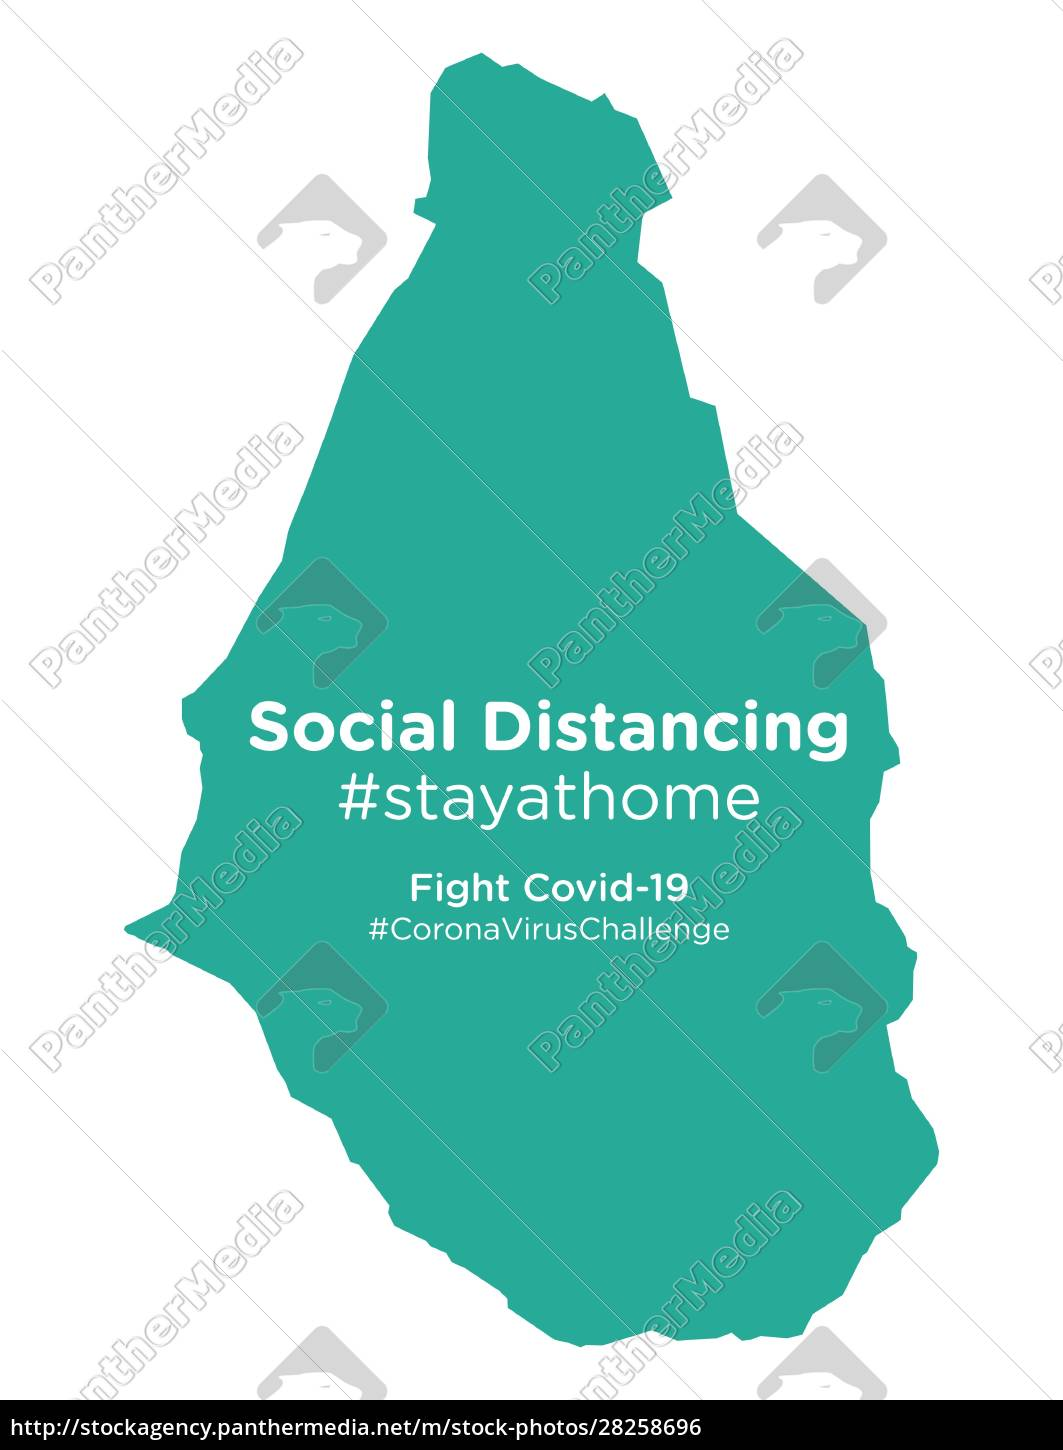 montserrat, map, with, social, distancing, stayathome - 28258696